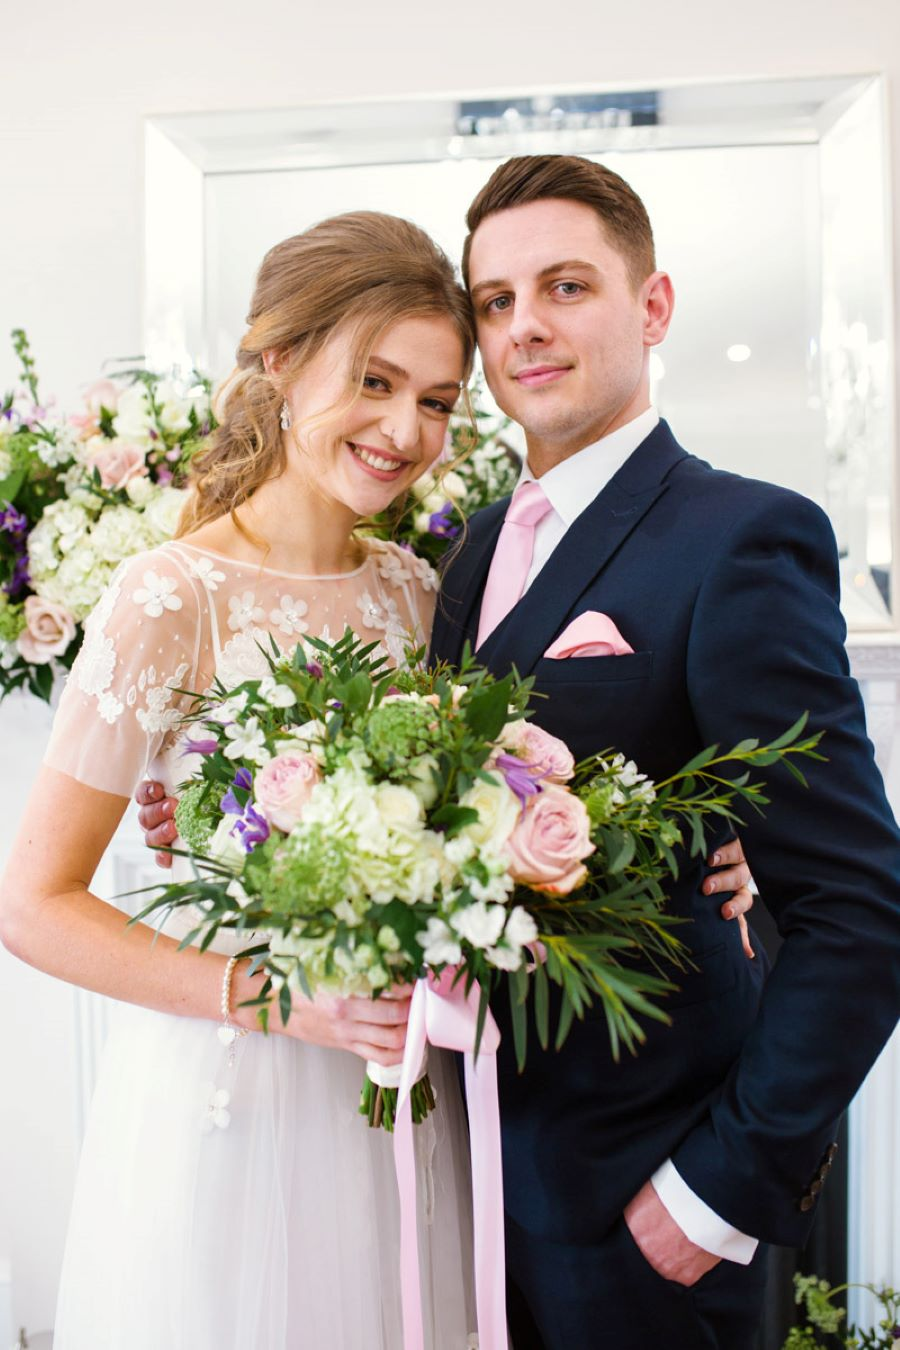 Light and romance with natural blush tones - wedding ideas from Downham Hall. Photographer credit Magical Moments Photography (13)